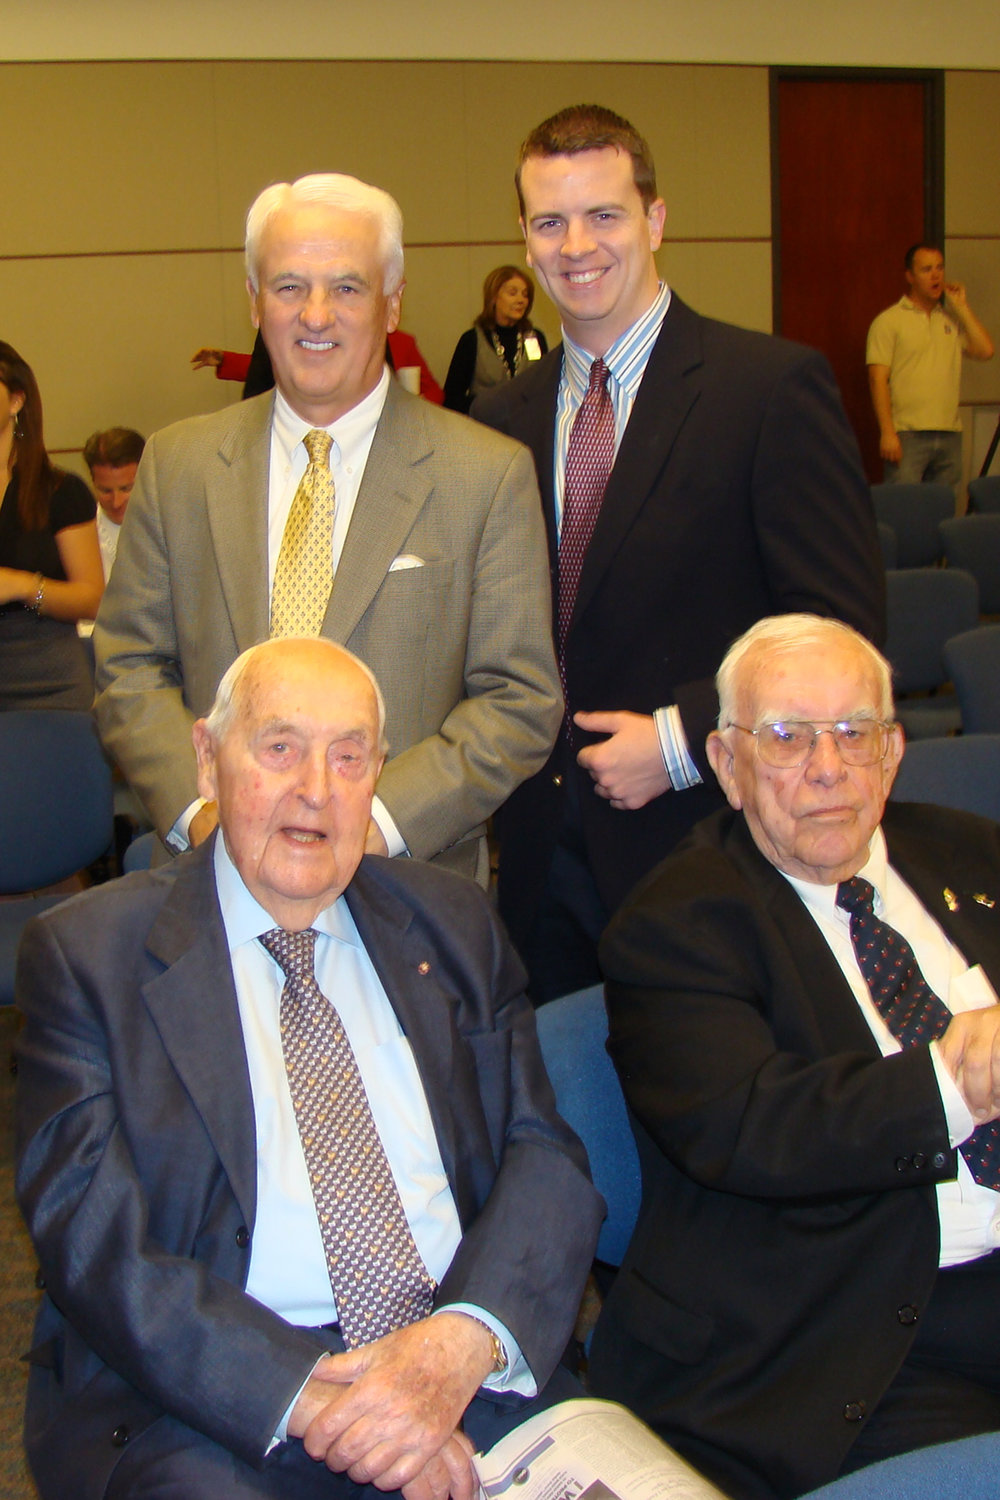 Sir Lennox Hewitt, Bob Cutler; & John & Jack O'Connor, 30 Oct '08.jpg